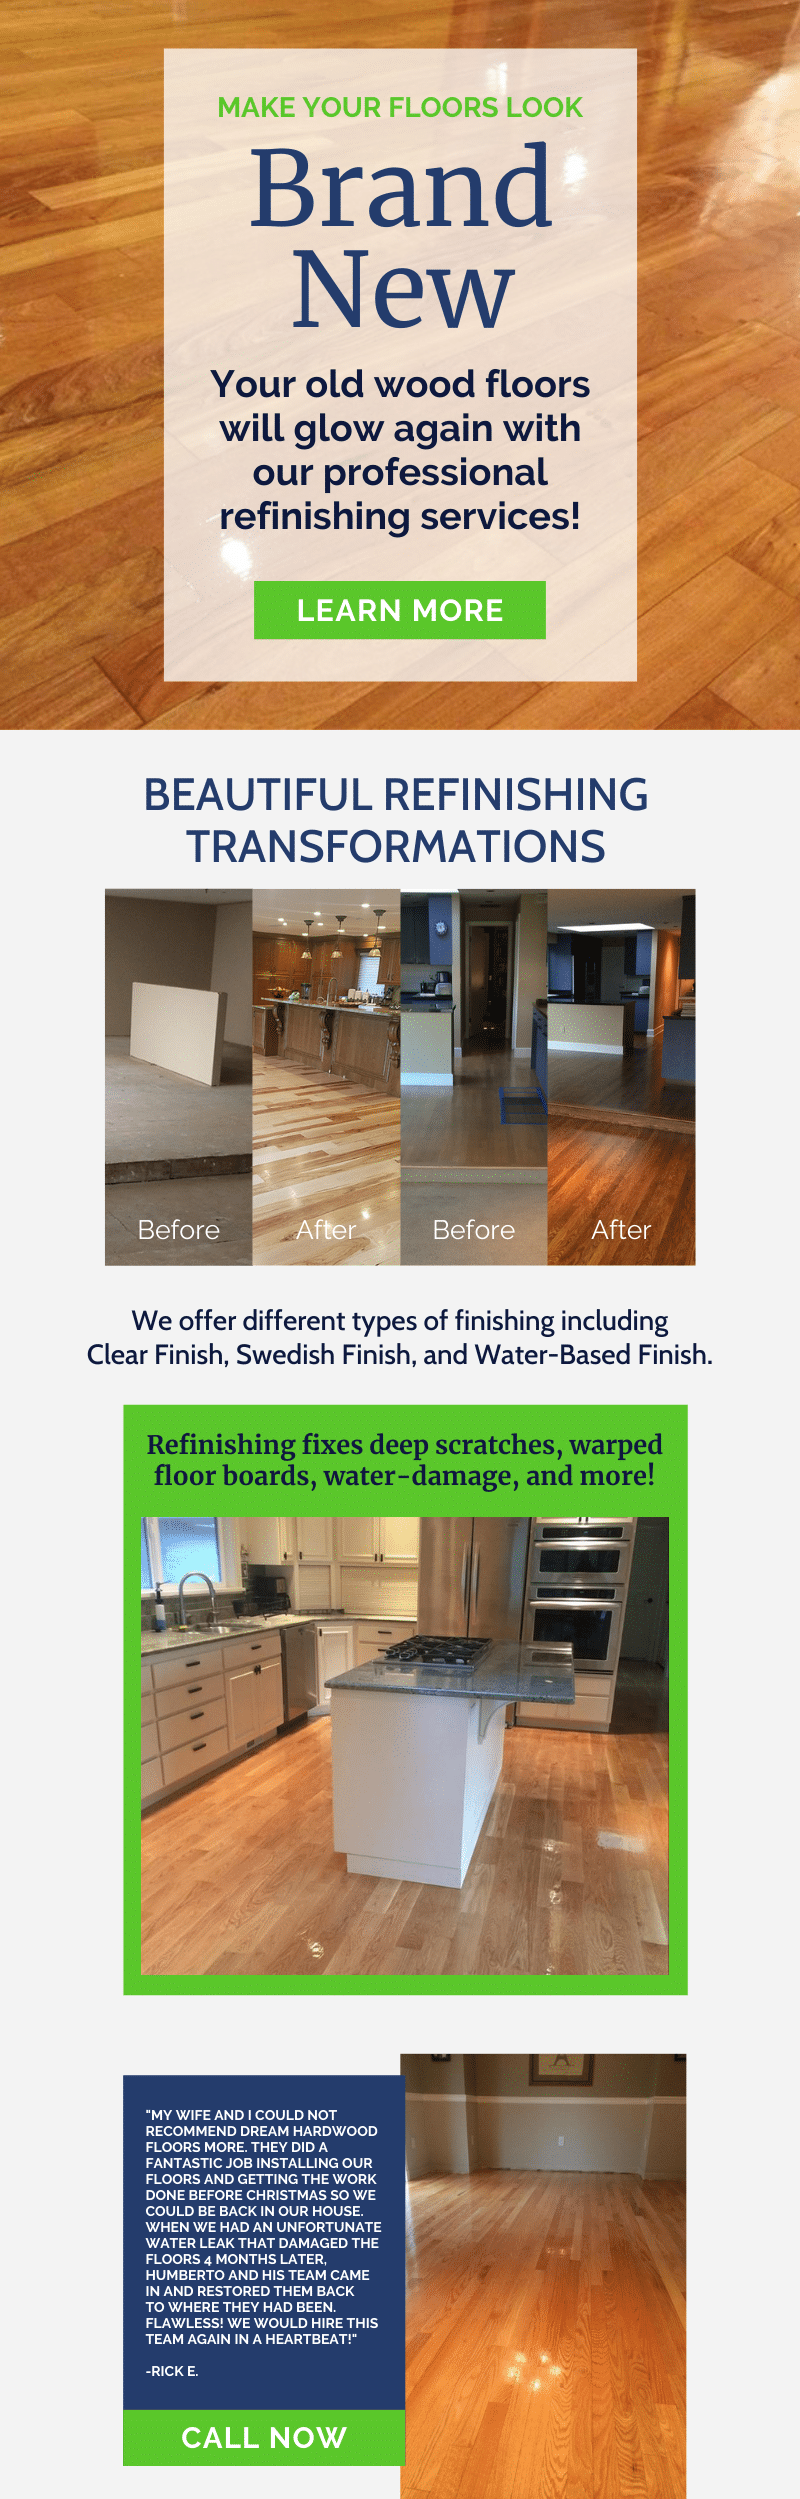 Make Your Floors Look Brand New! 3